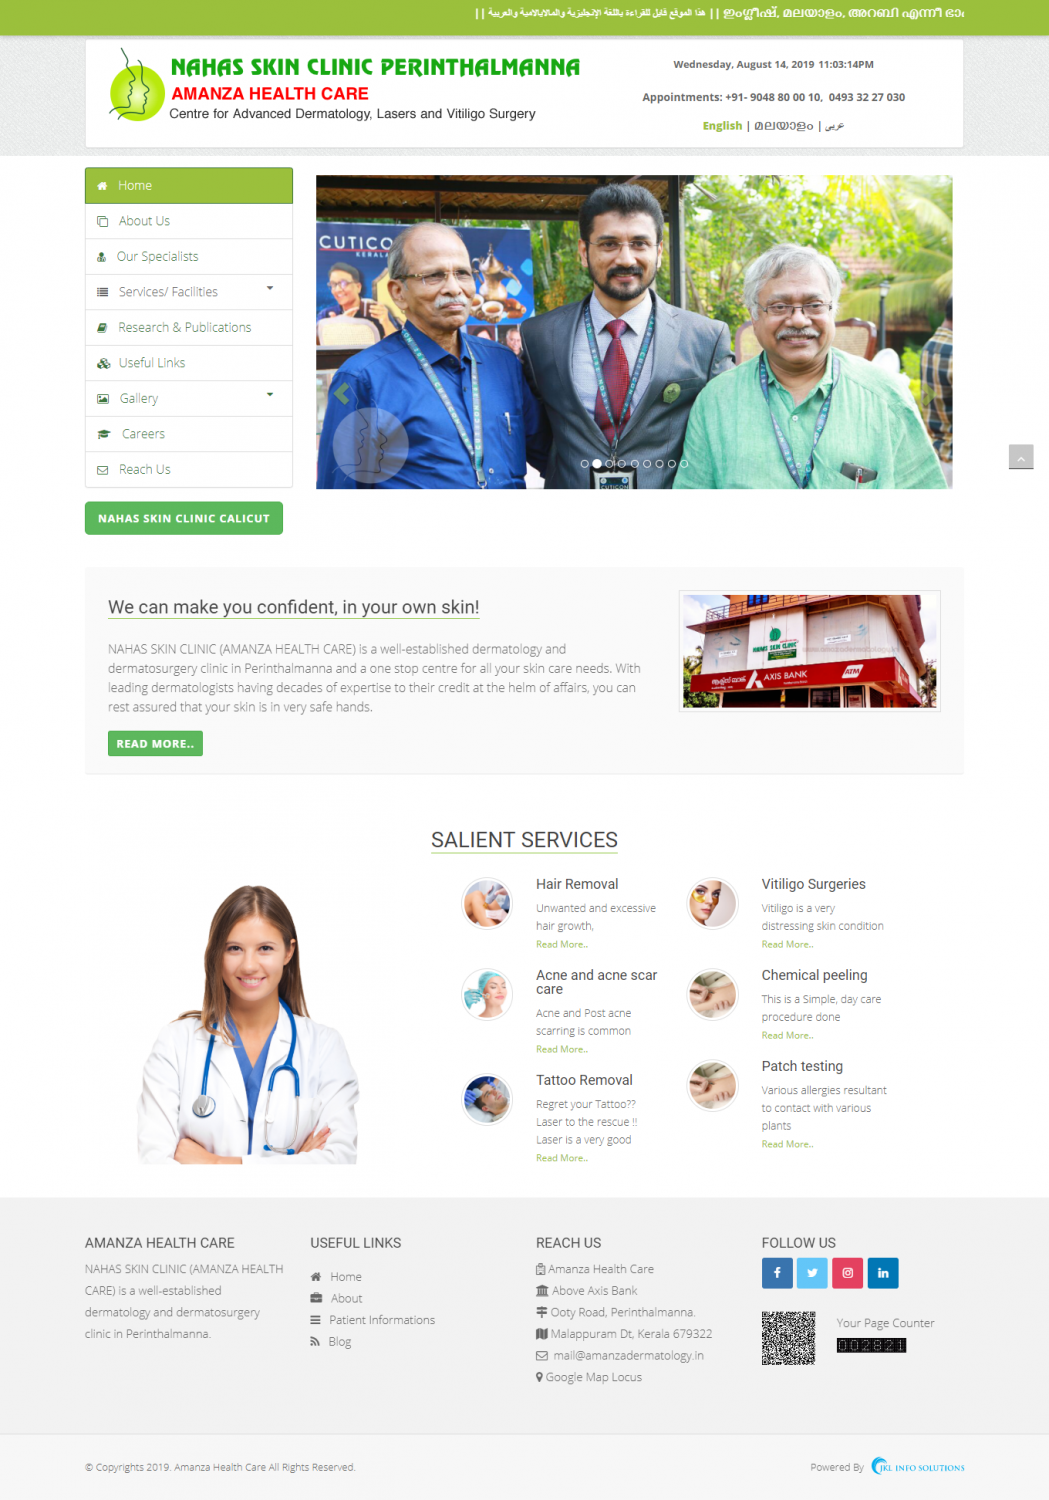 AMANZA HEALTH CARE Perinthalmanna